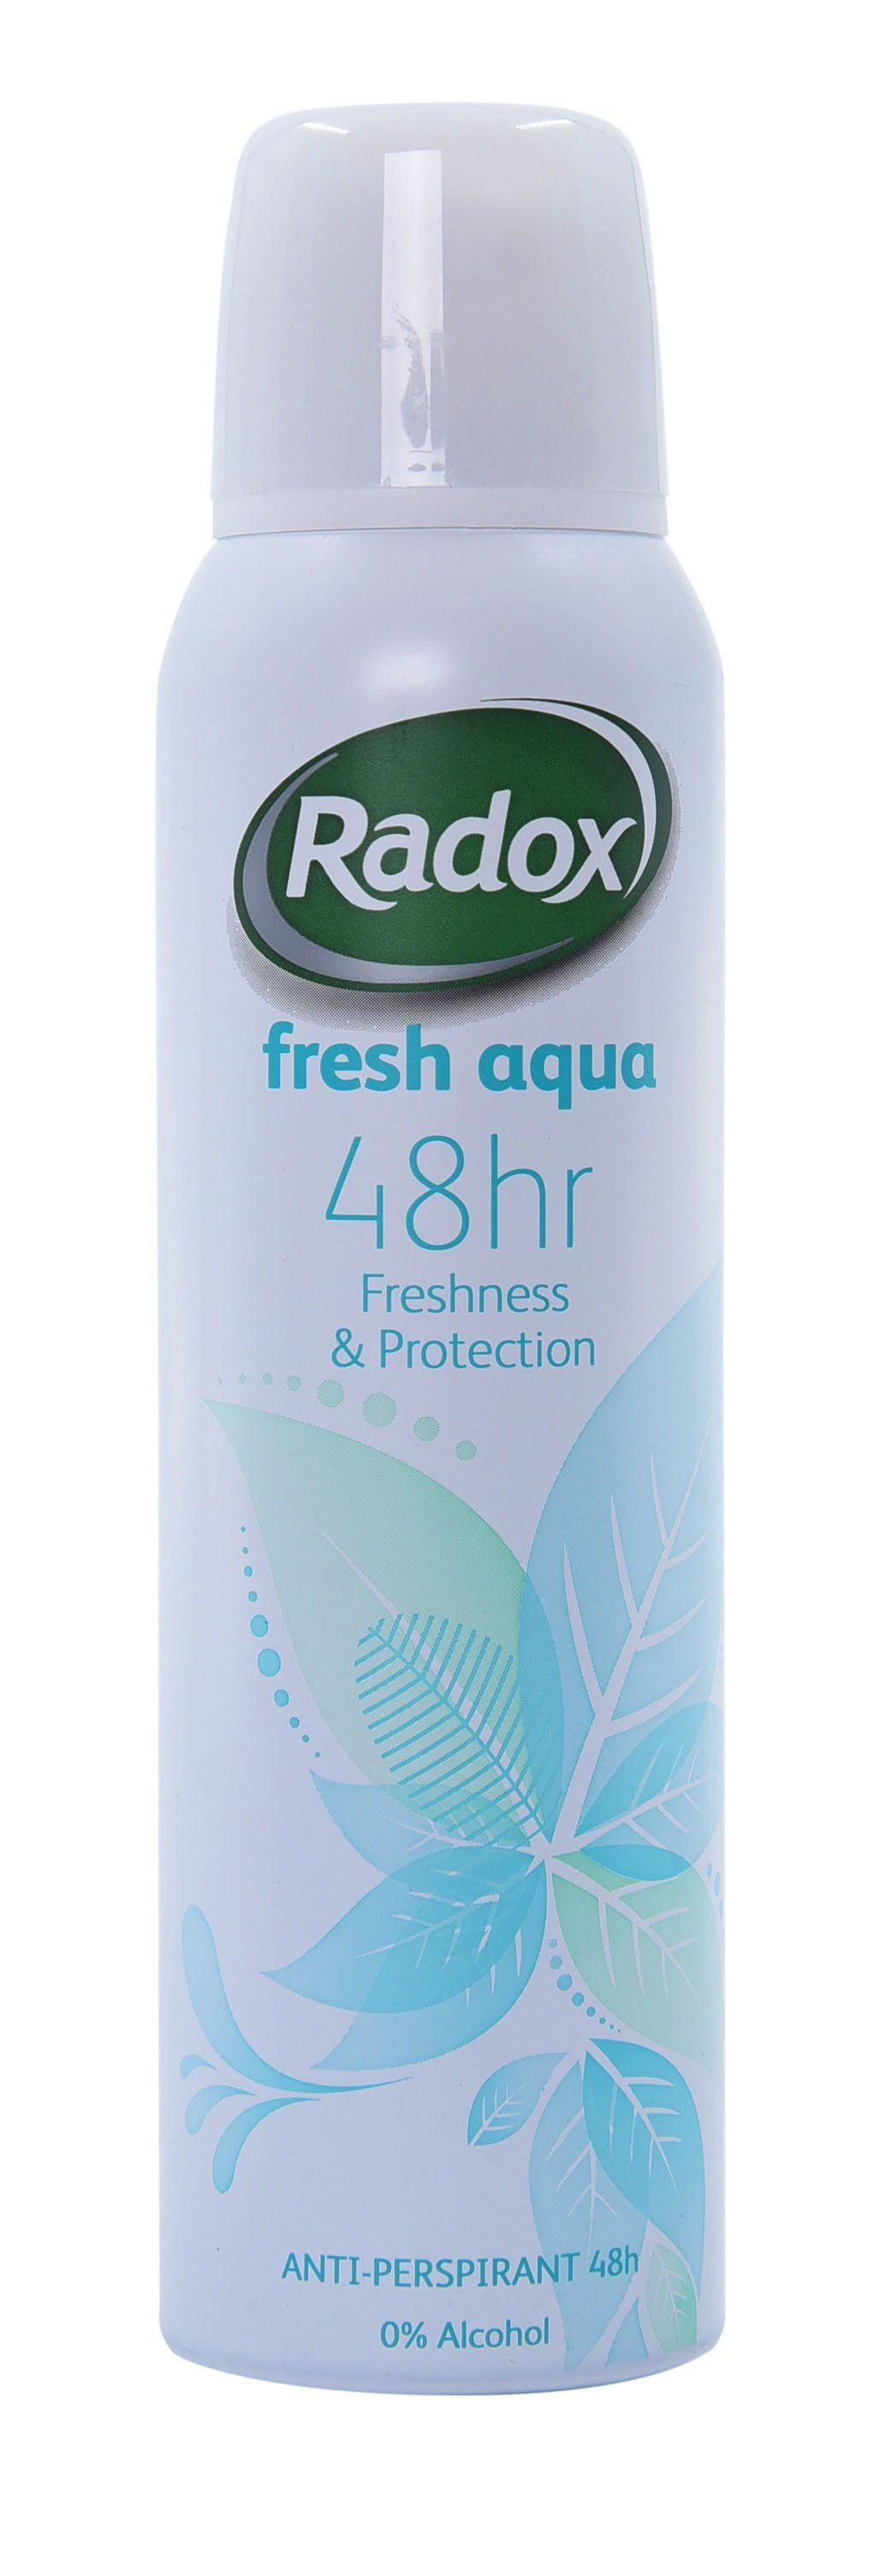 Radox Women Body Spray AP Fresh Aqua 150ml - Pack of 6 (Sty-RADO004WOME)